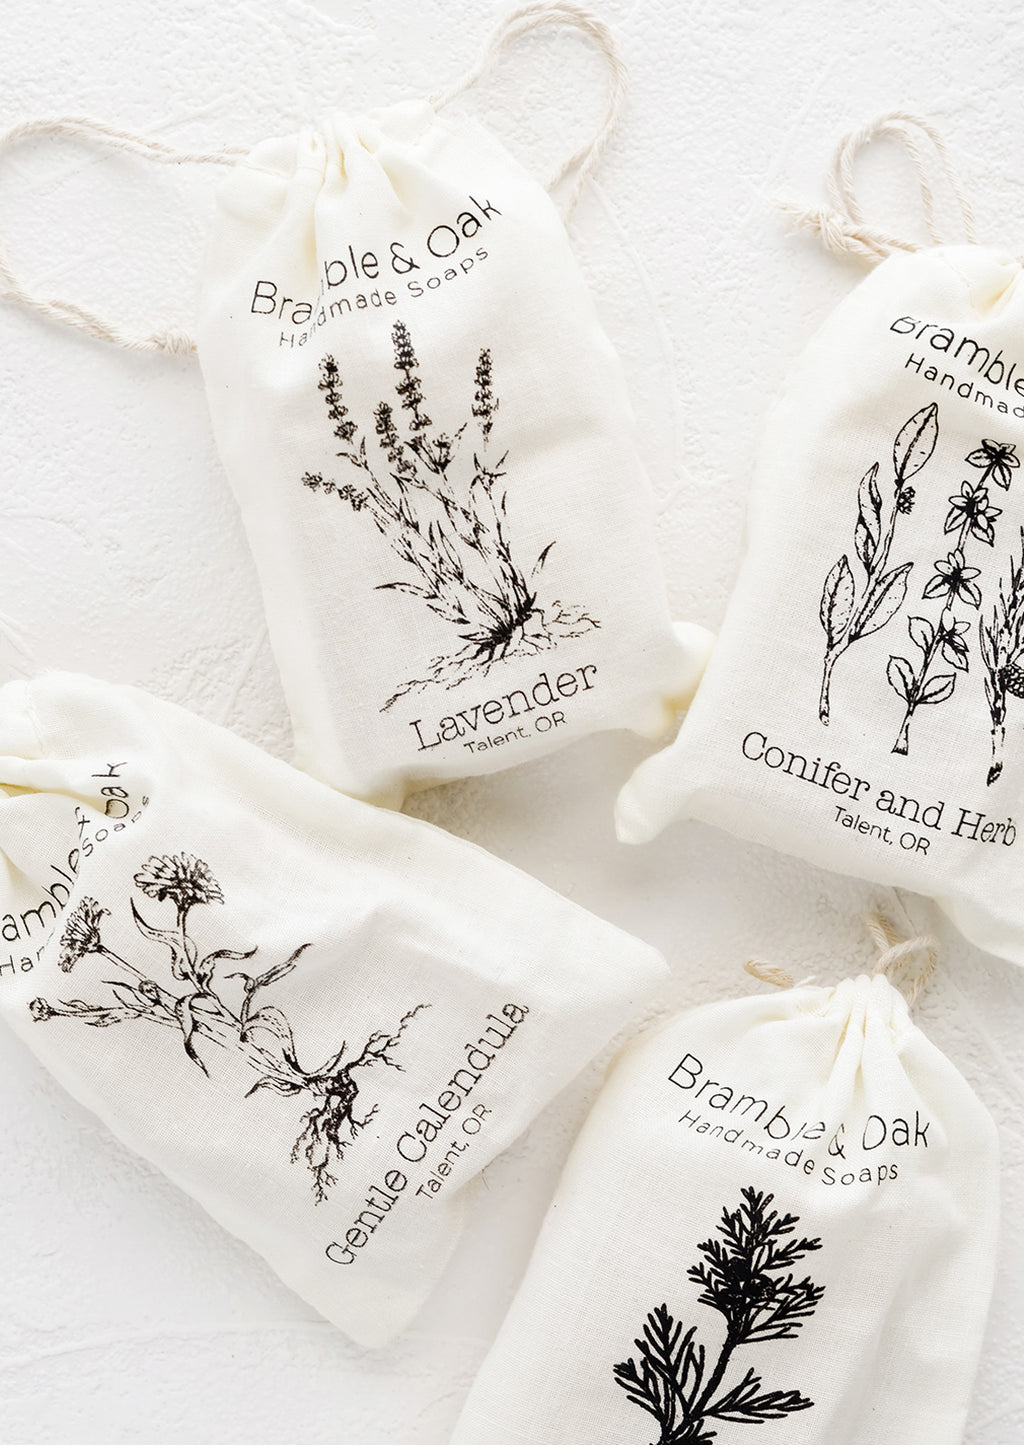 Lavender: Muslin bag packaging for bar soap with botanical imagery.